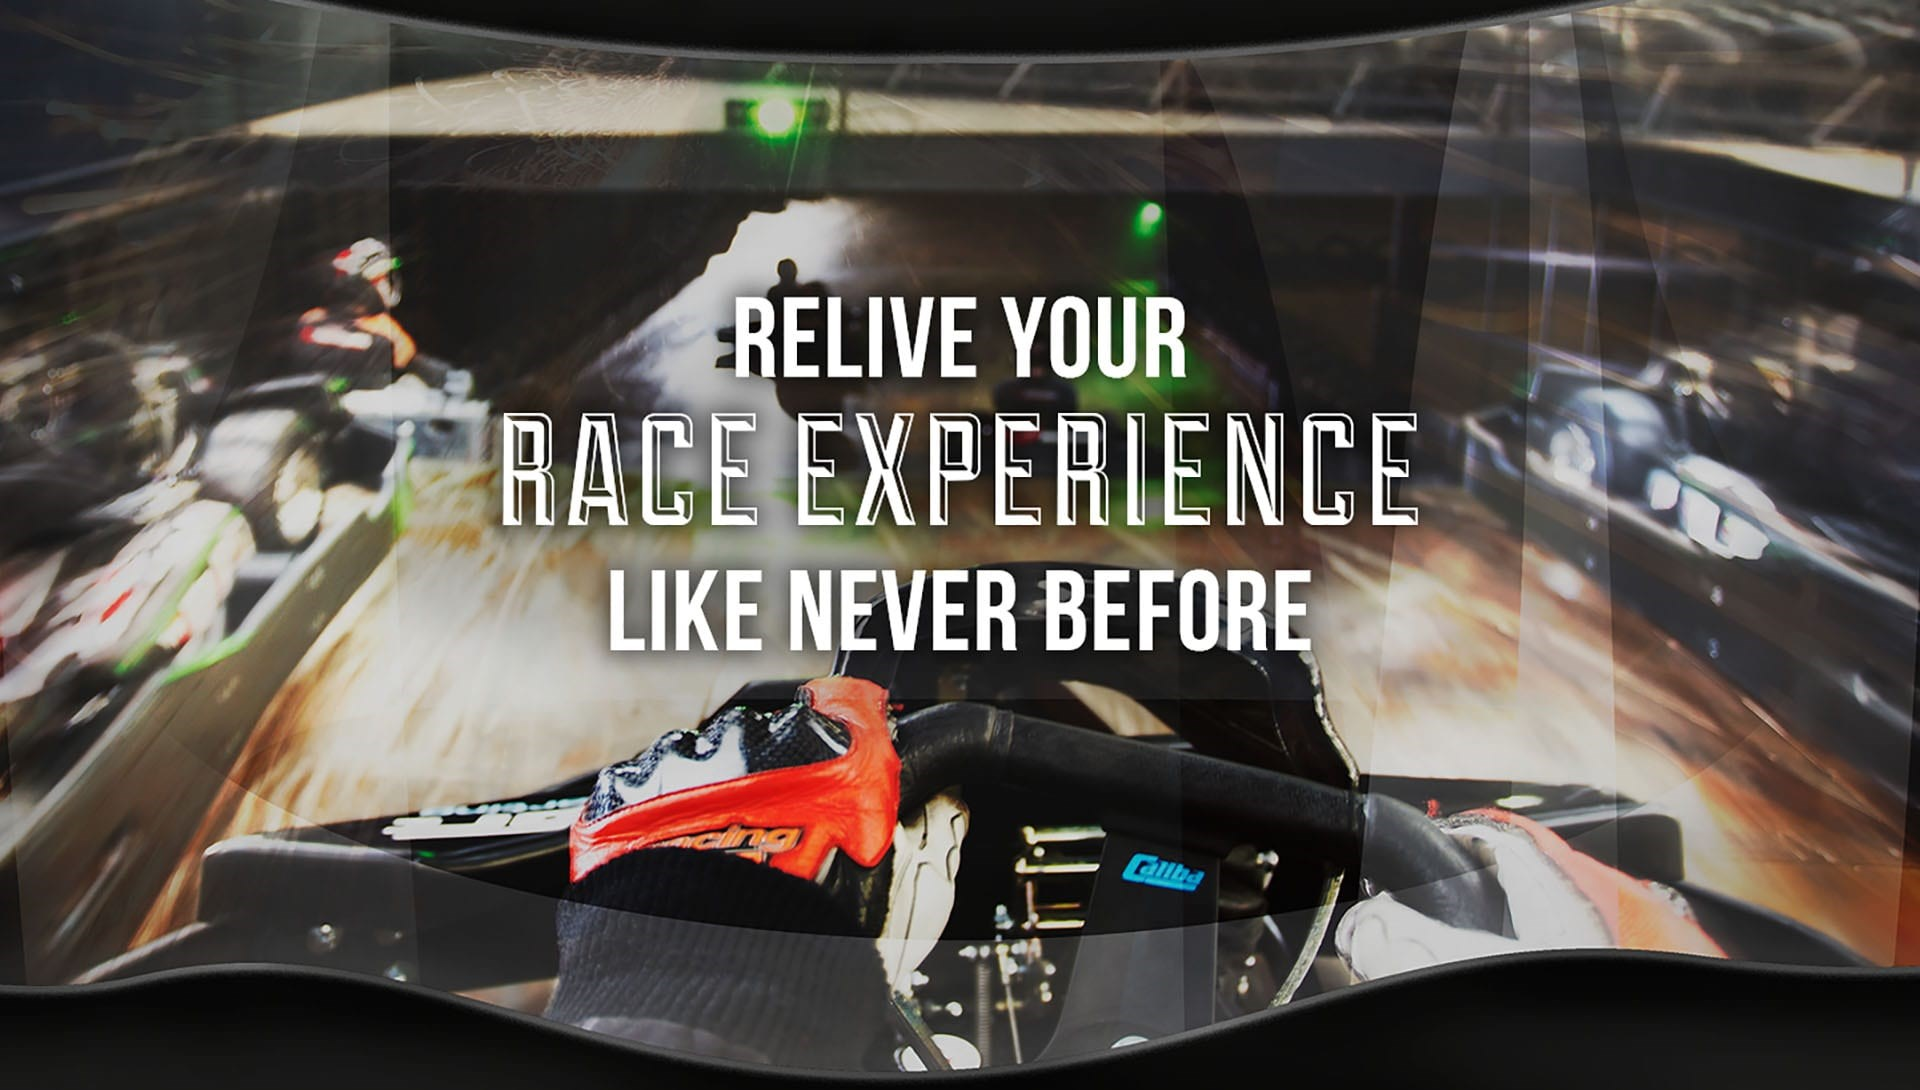 UNBEATABLE GO KARTING OFFERS - HELMET CAMERA HIRE